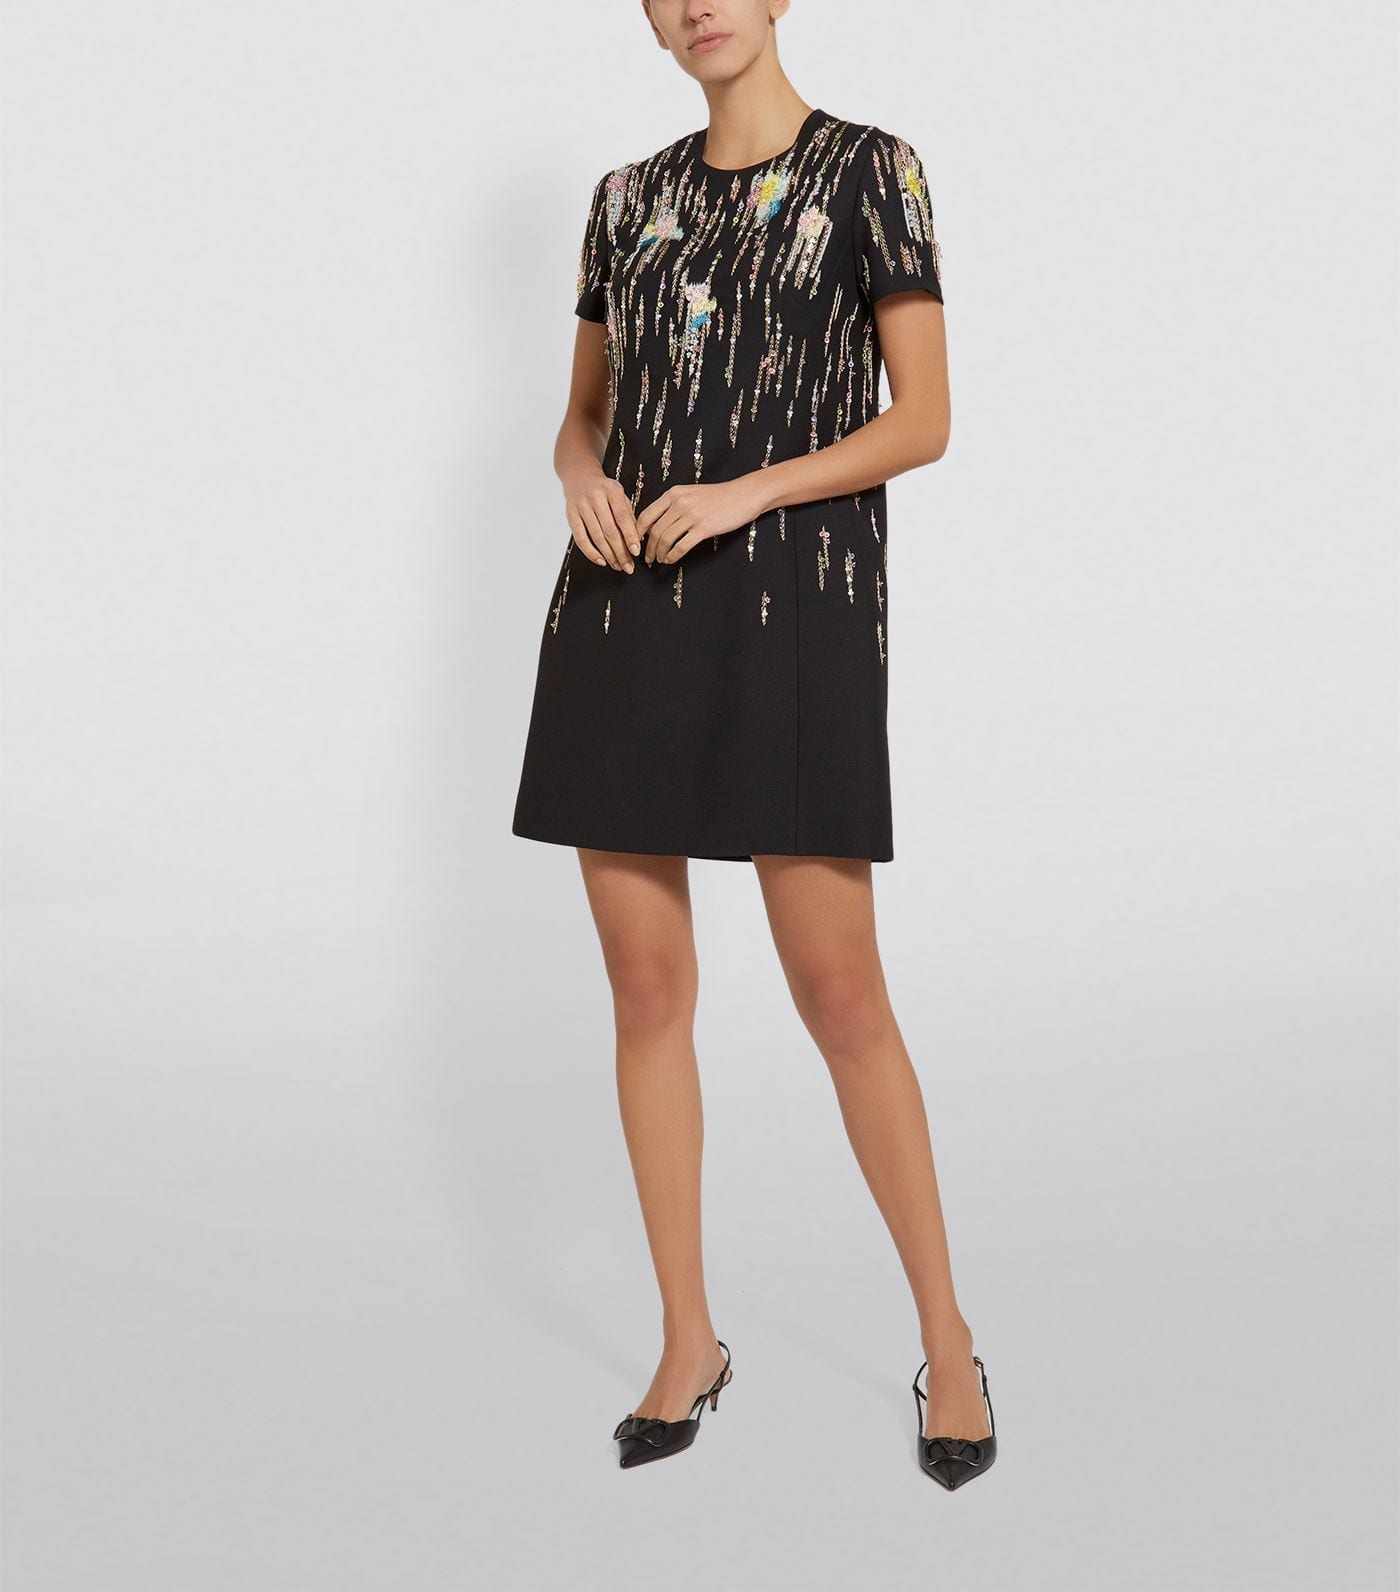 VALENTINO Embellished Short-Sleeved Mini Dress